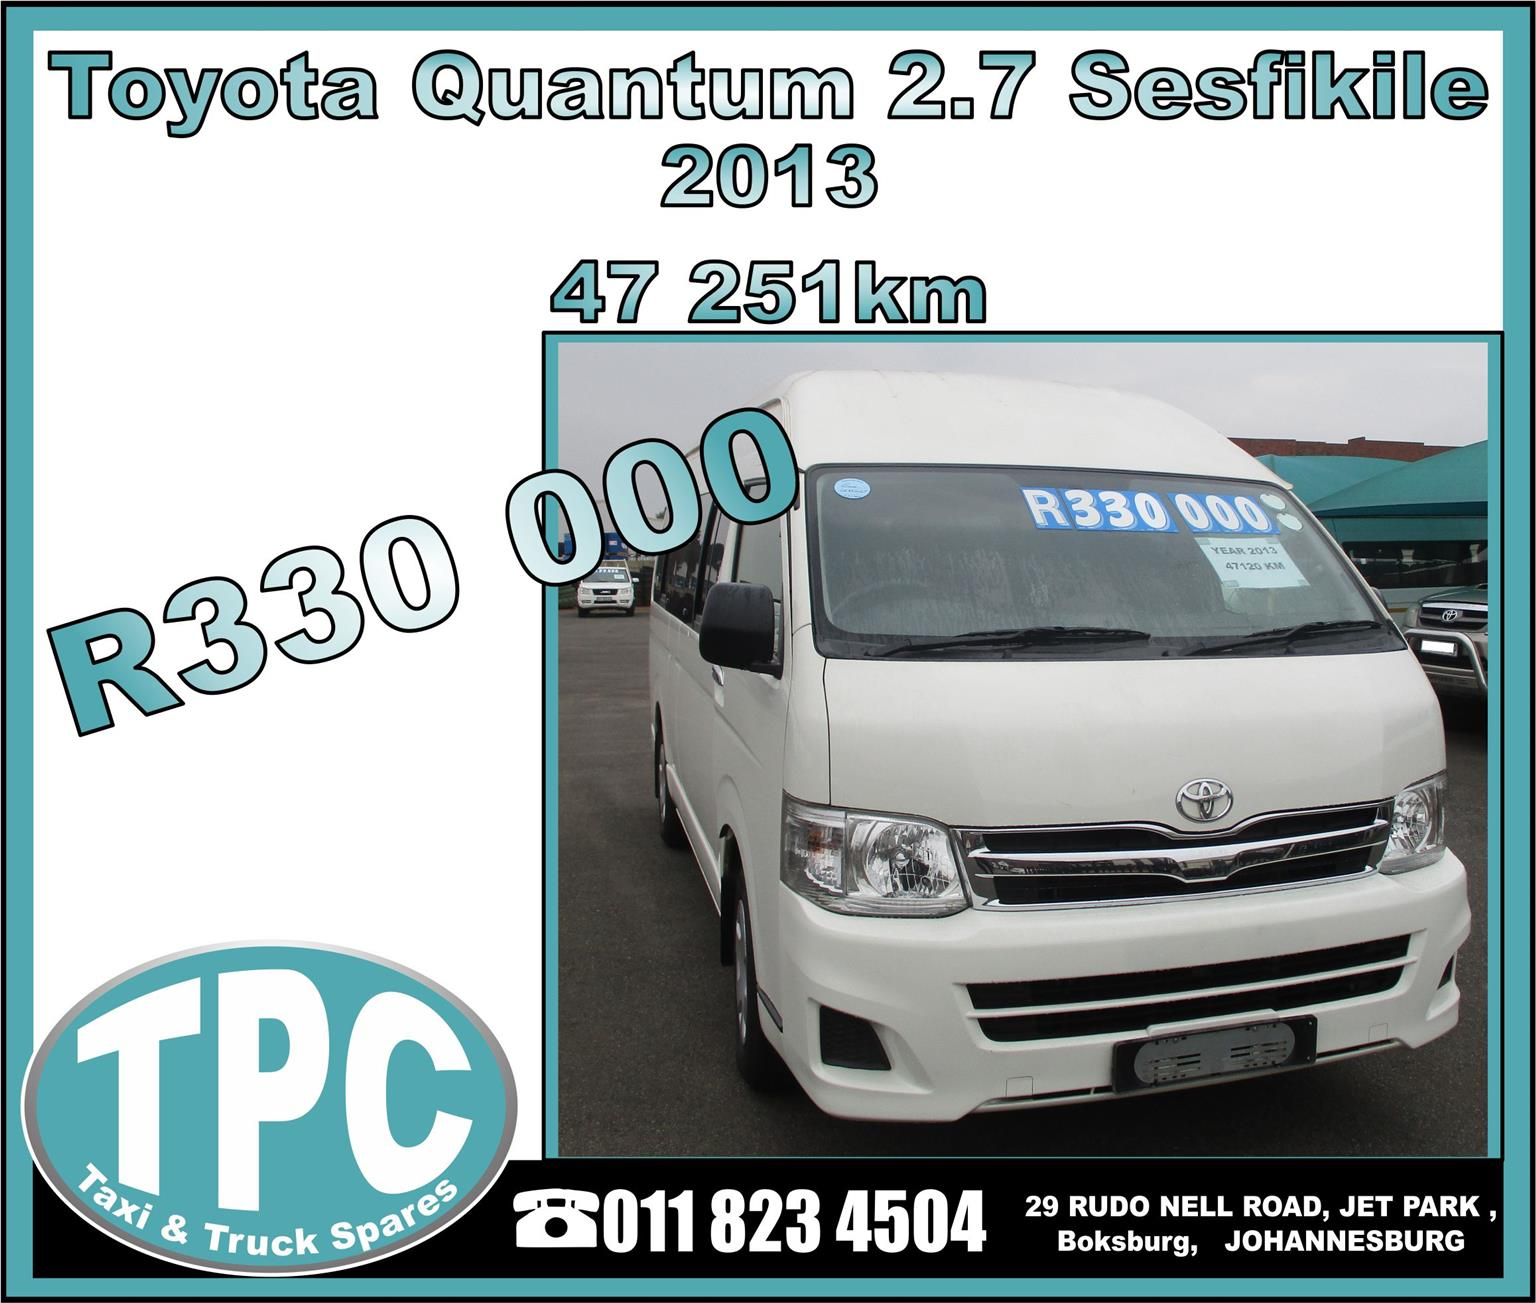 Toyota Quantum 2.7 Sesfikile 2013 - Excellent Condition - TPC Rebuild Yard.